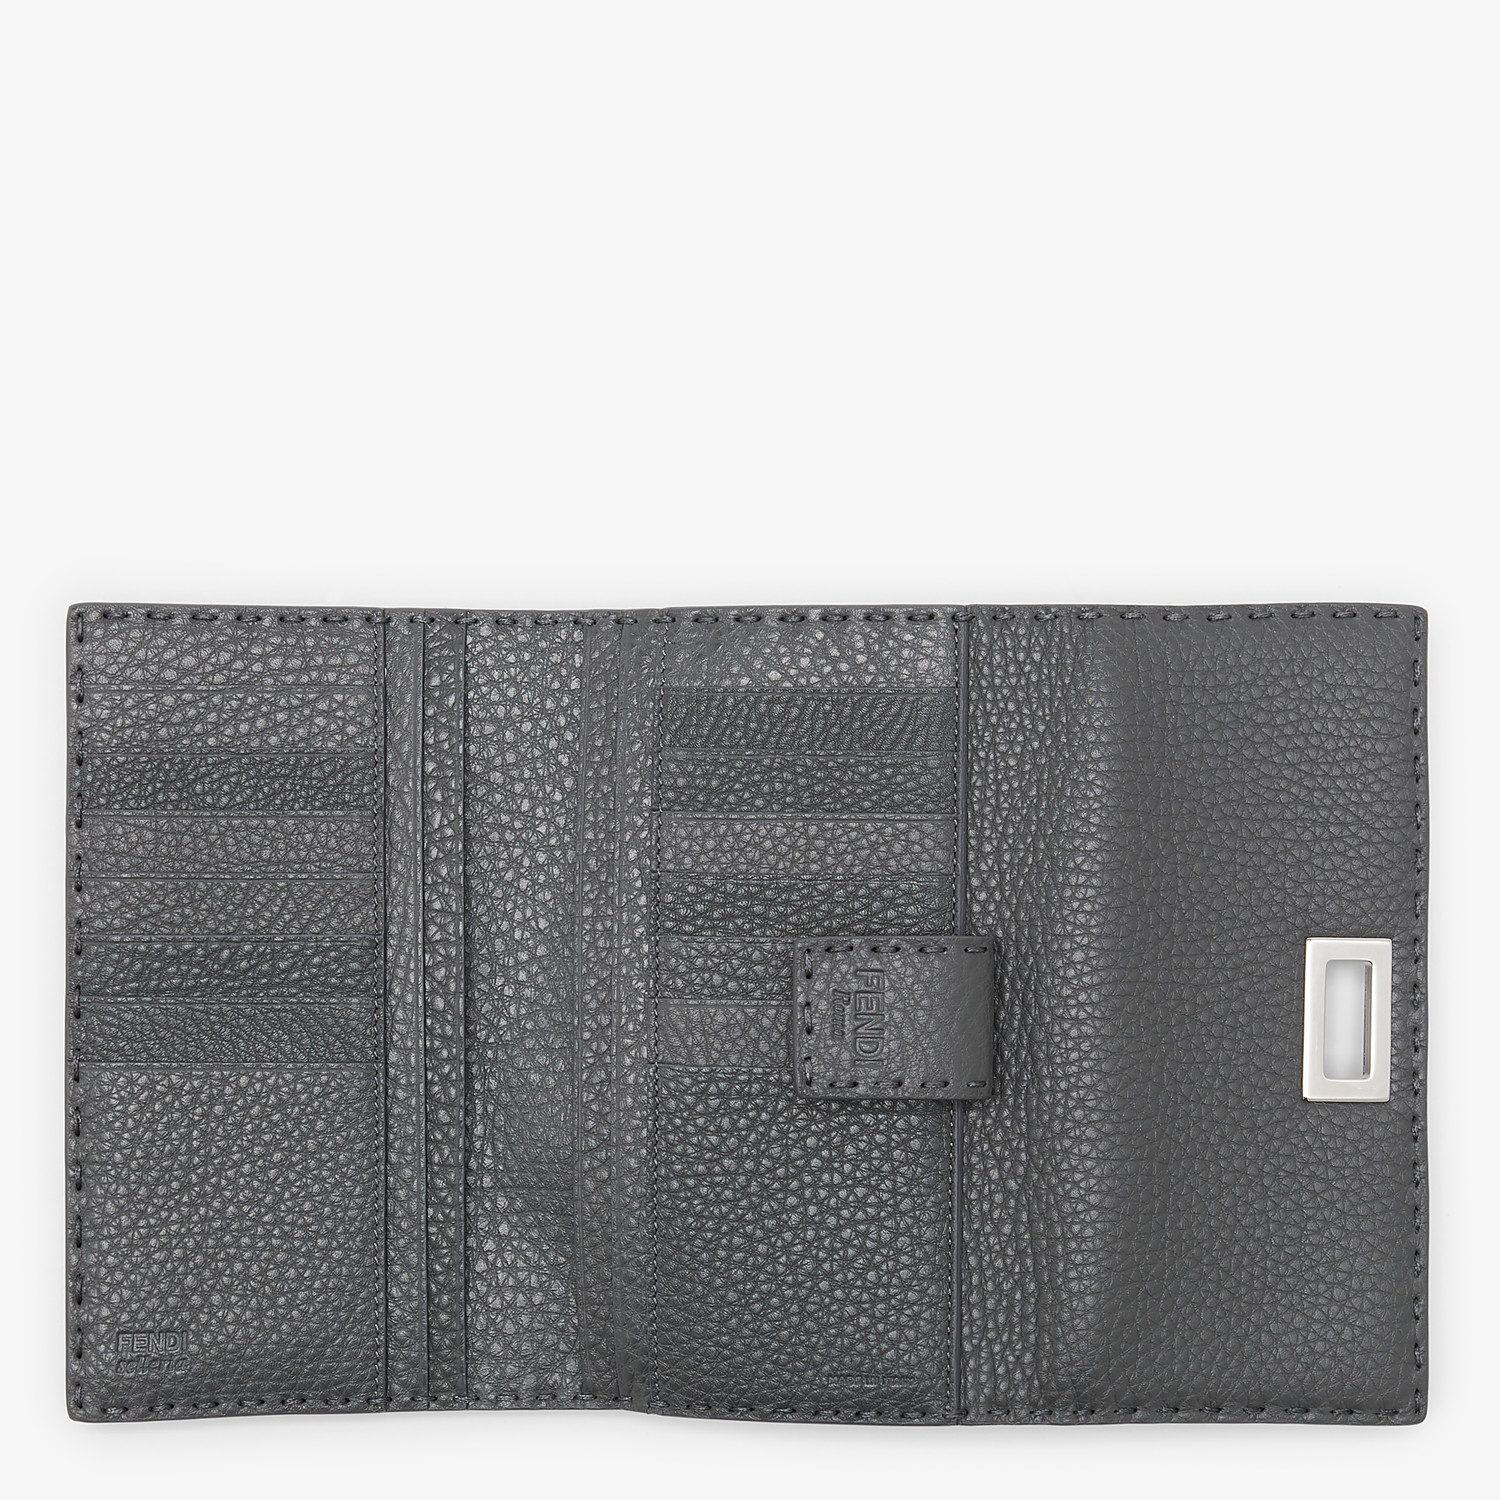 FENDI CONTINENTAL - Grey leather wallet - view 5 detail